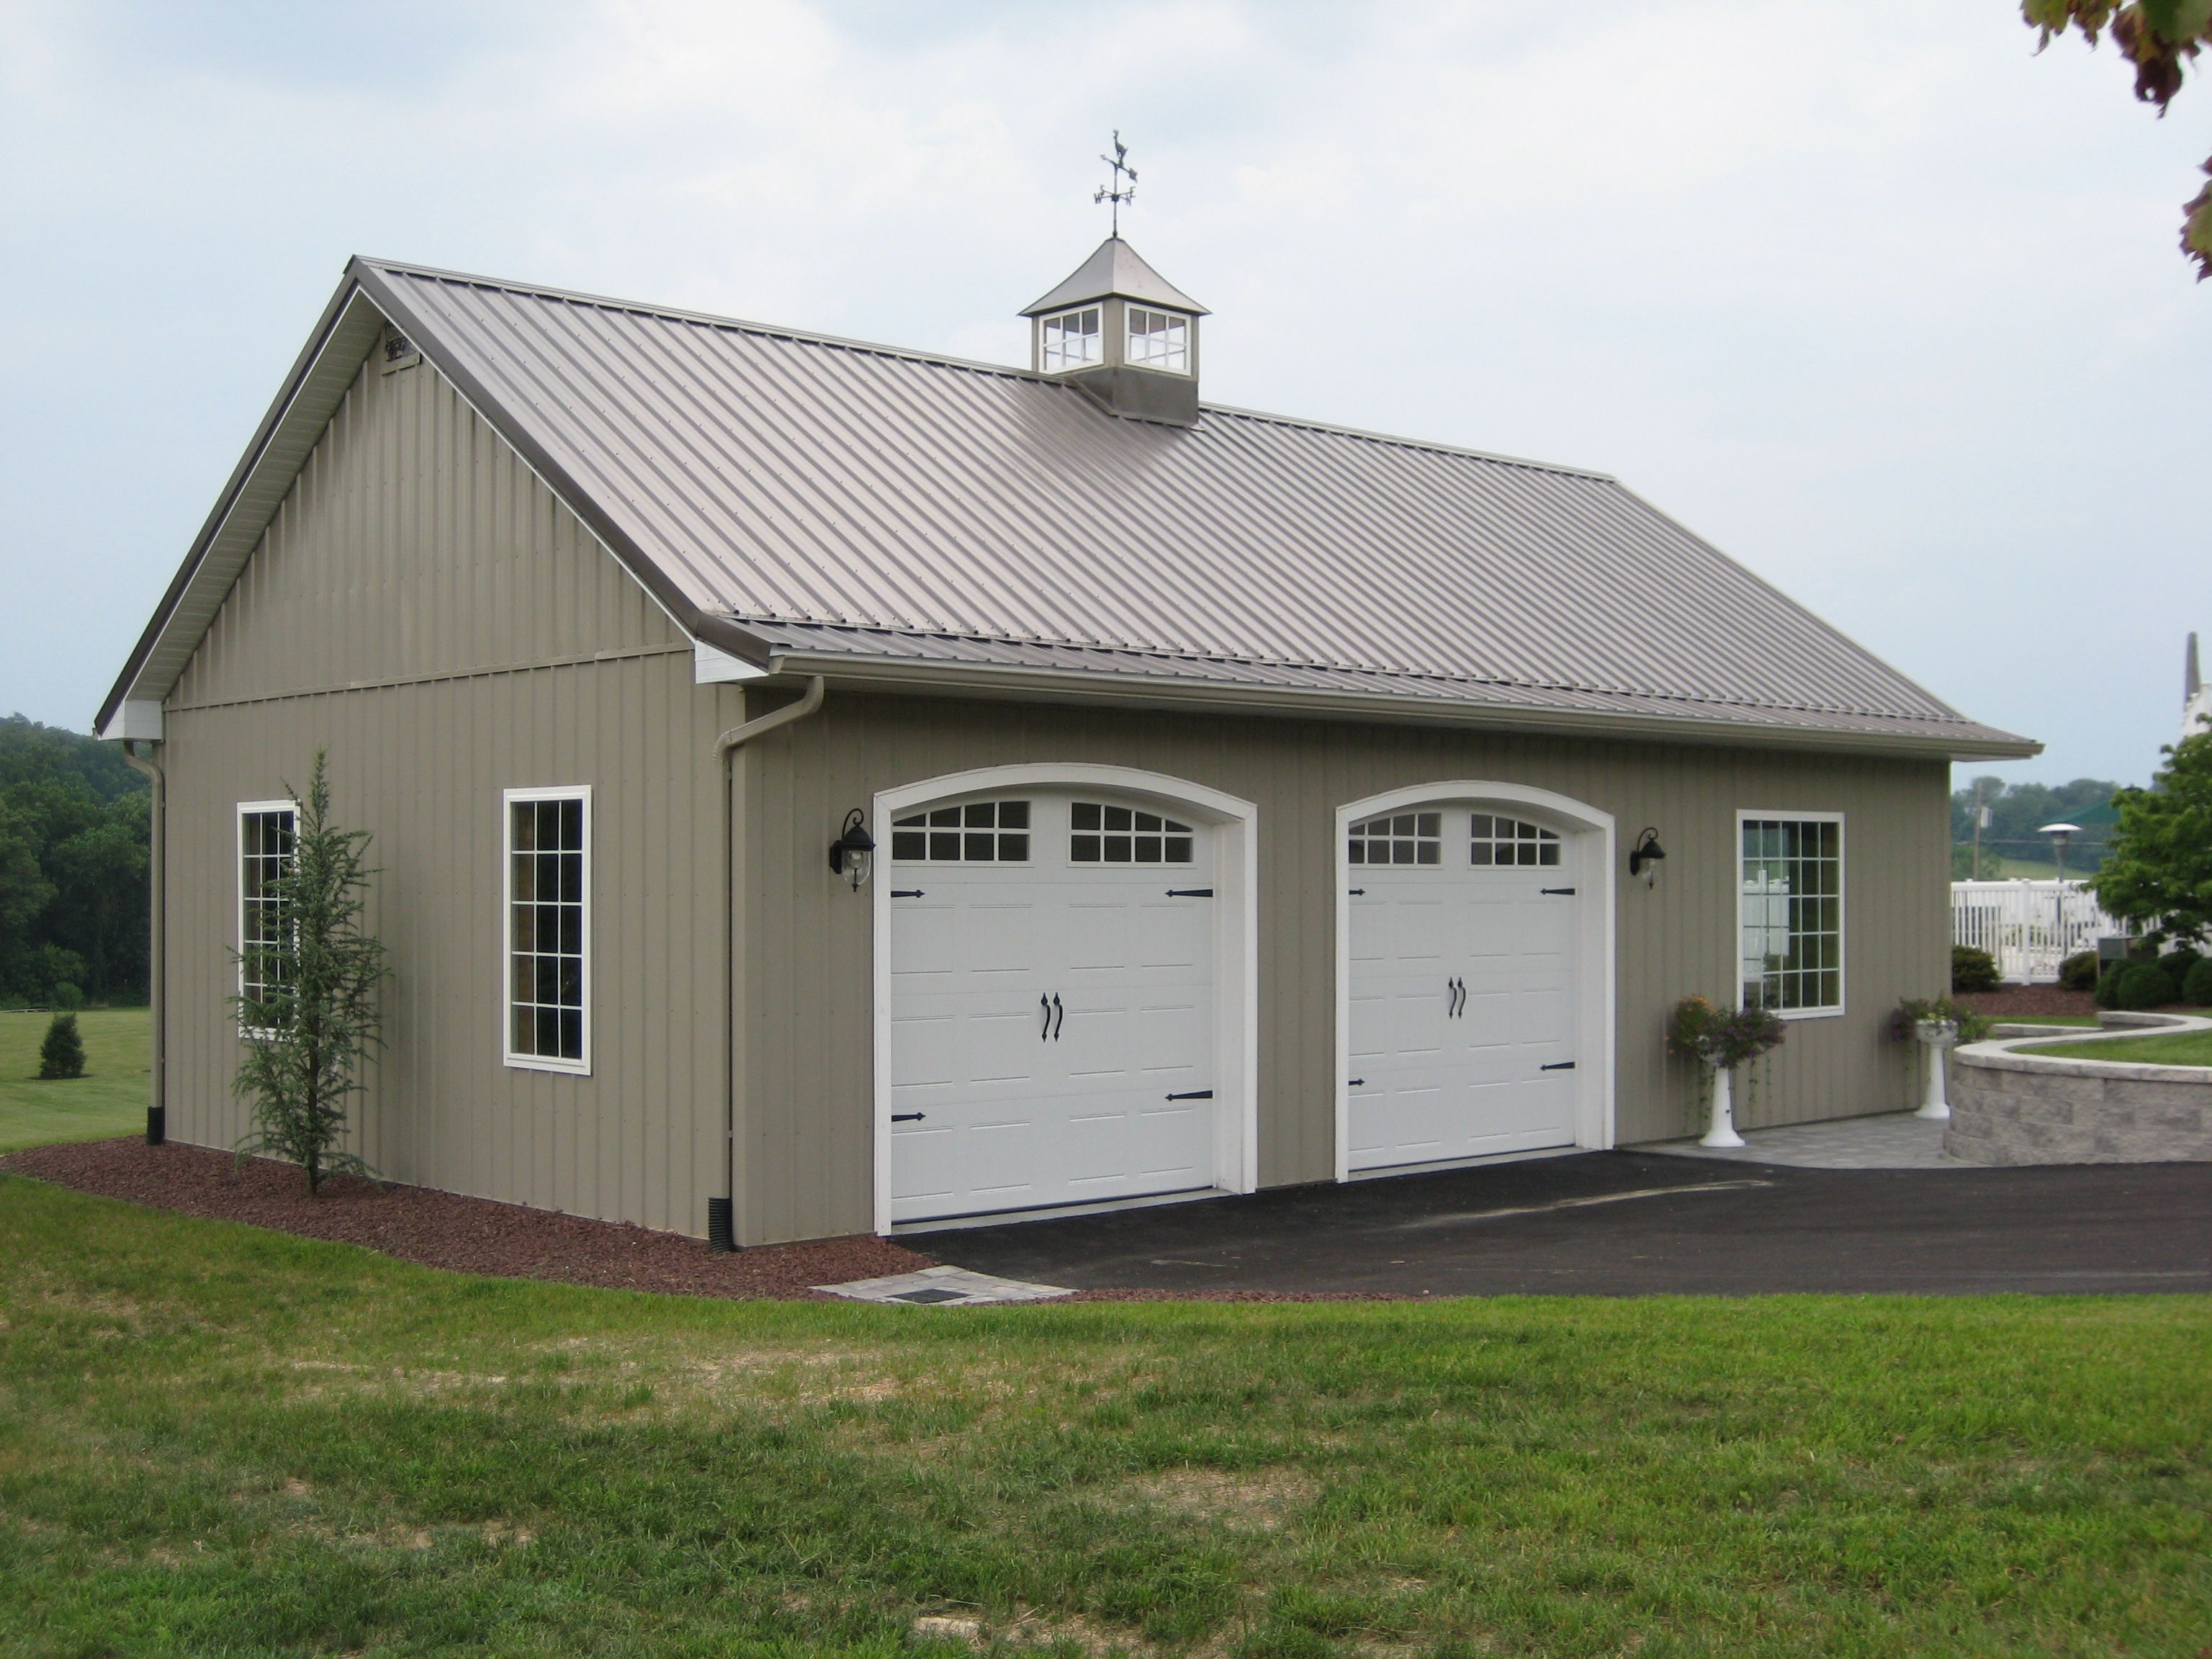 Best 25 pole barn garage ideas on pinterest pole barns for Houses with barns